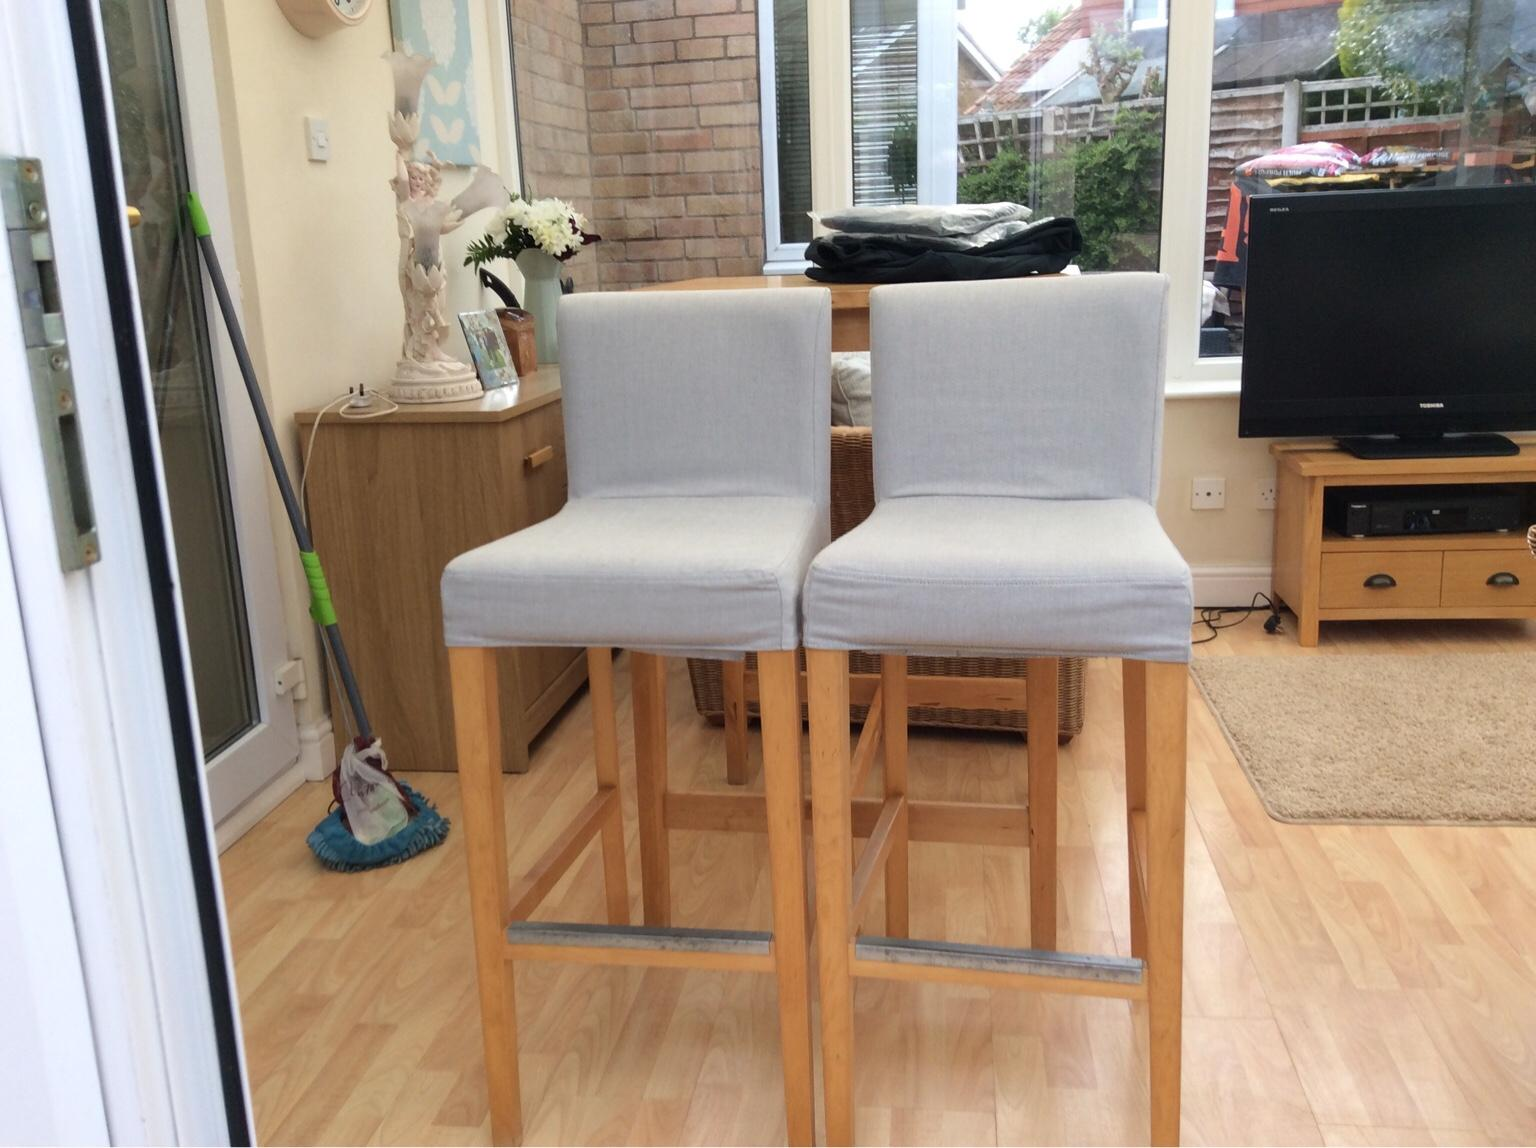 more photos ff2ec 304d8 Ikea Breakfast Bar and Two Stools